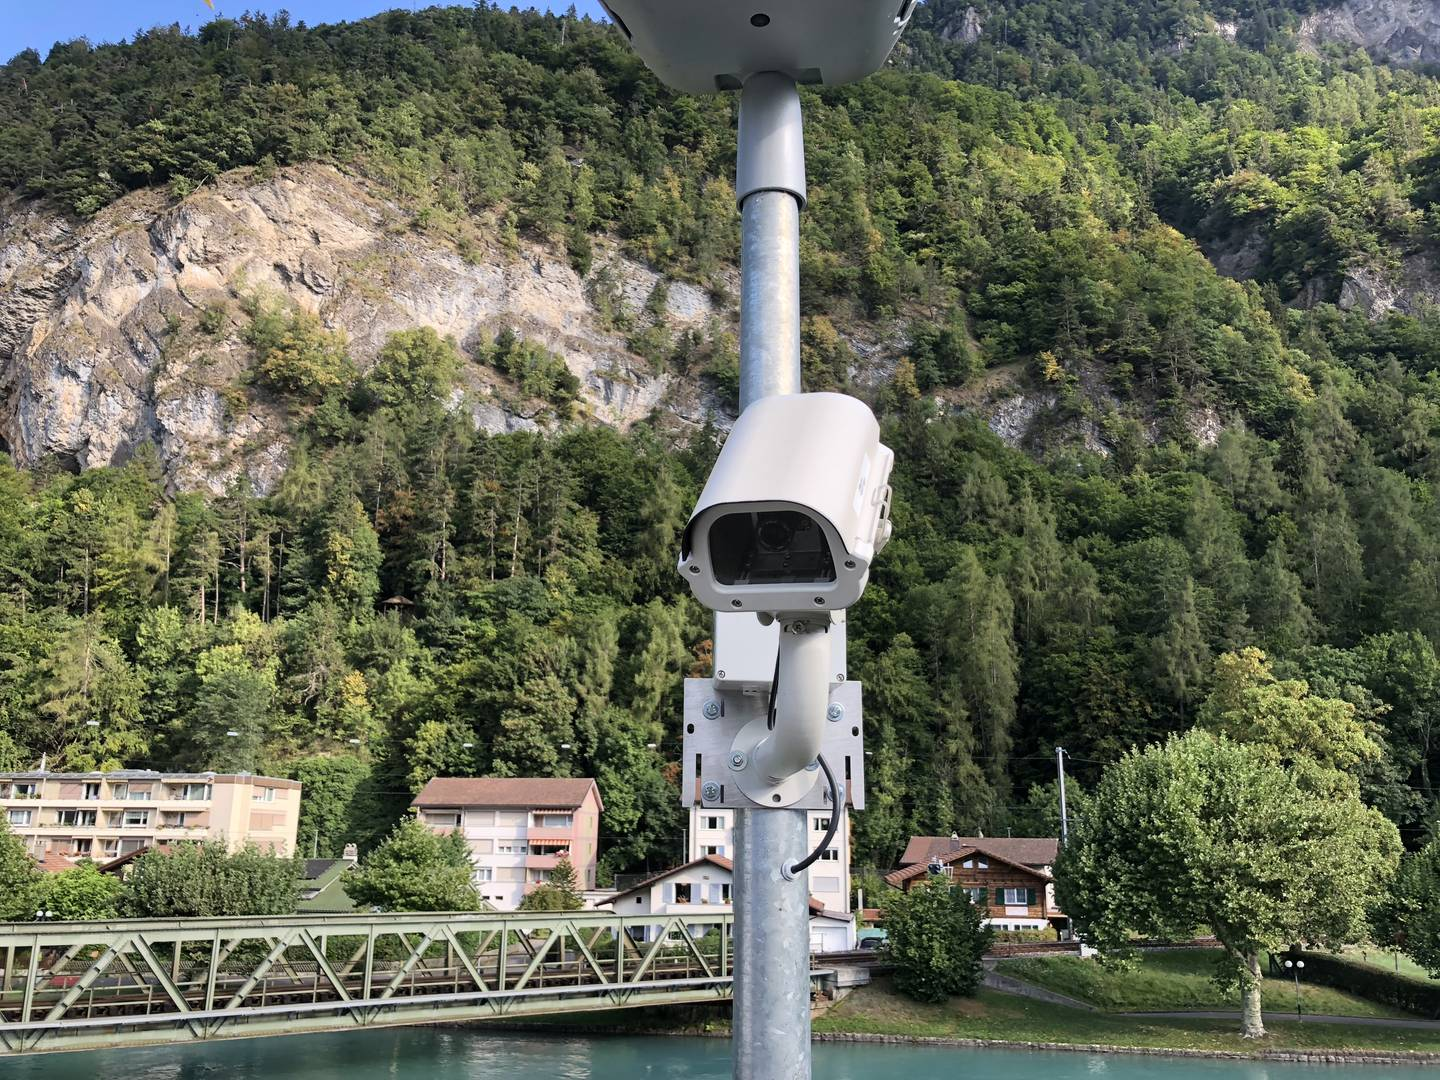 Cloud-based Surveillance System for Parking Space Operators